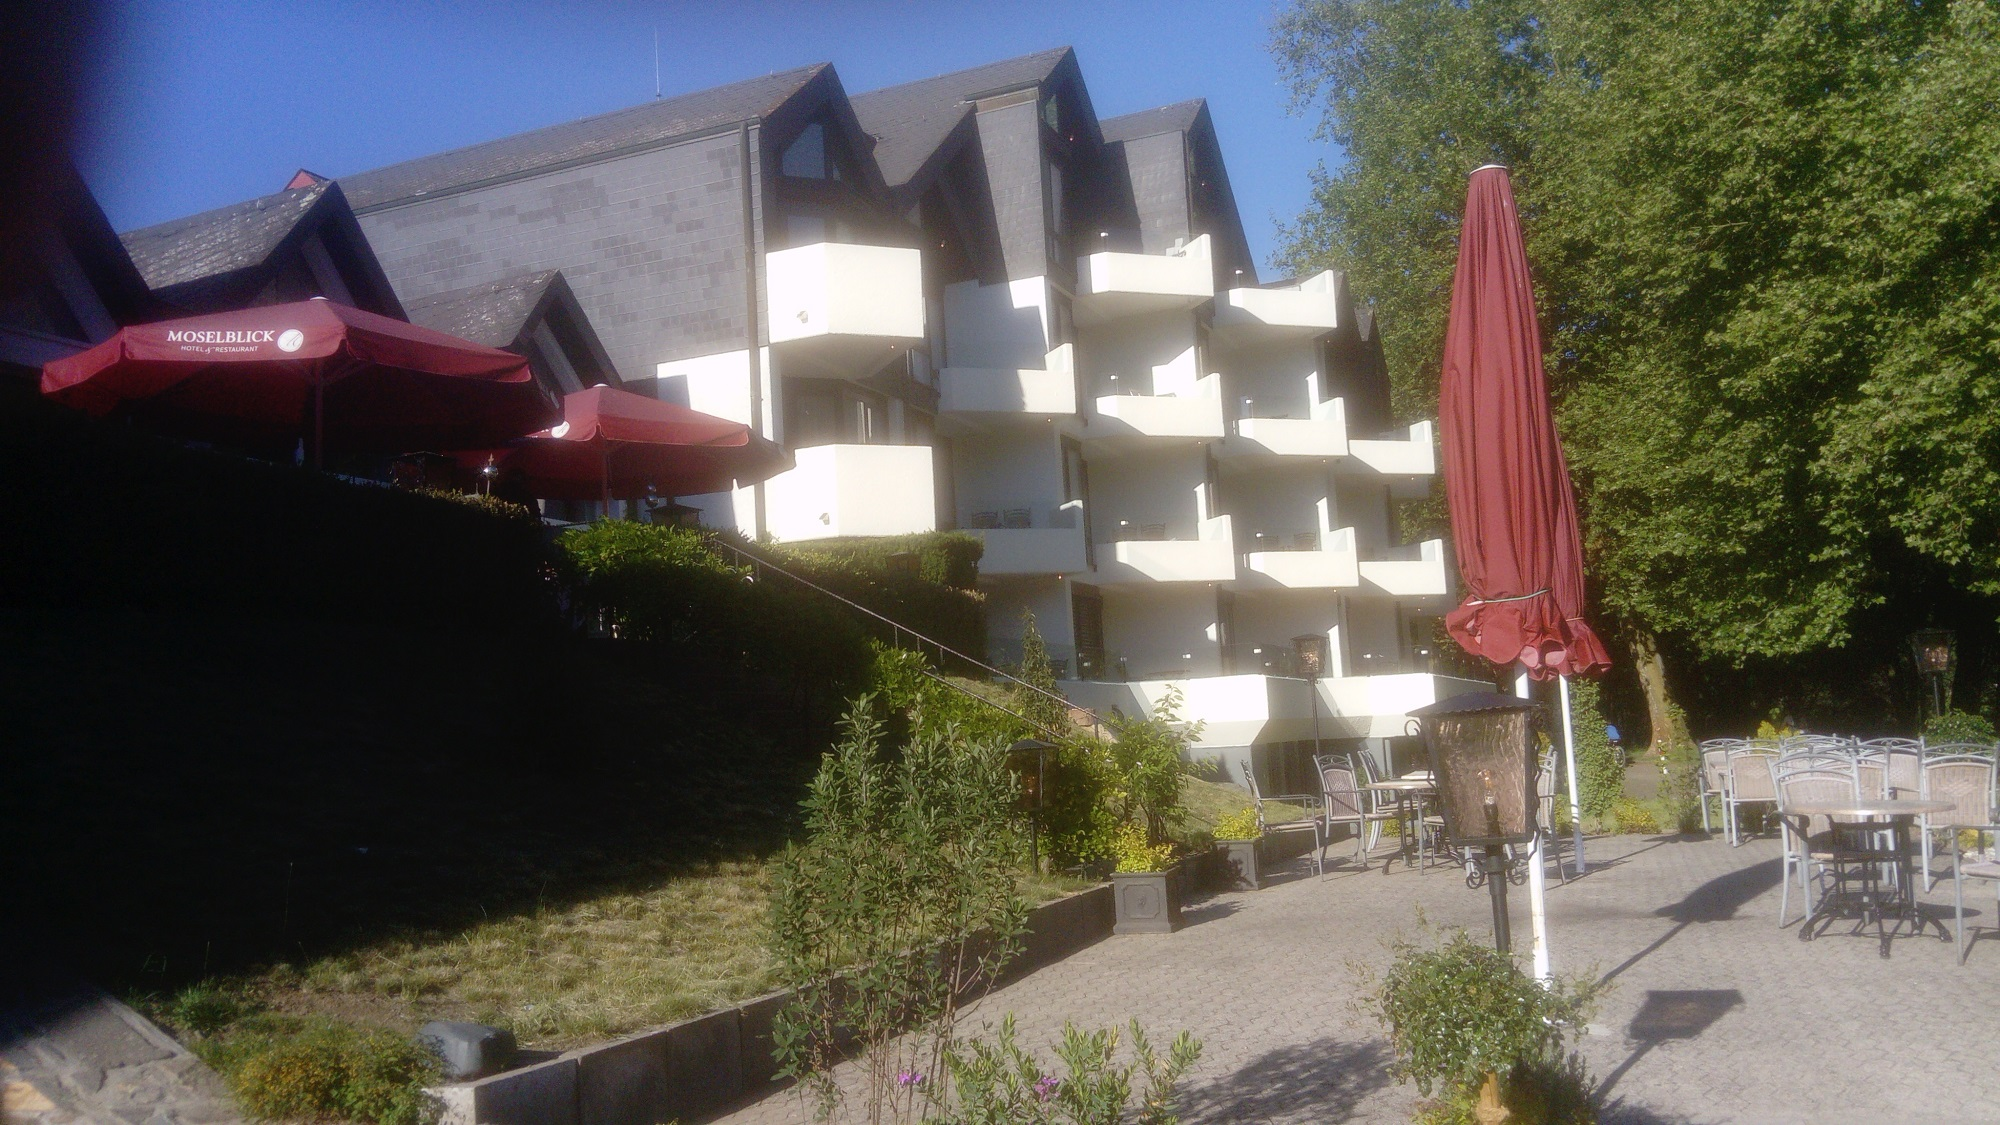 Hotel Moselblick